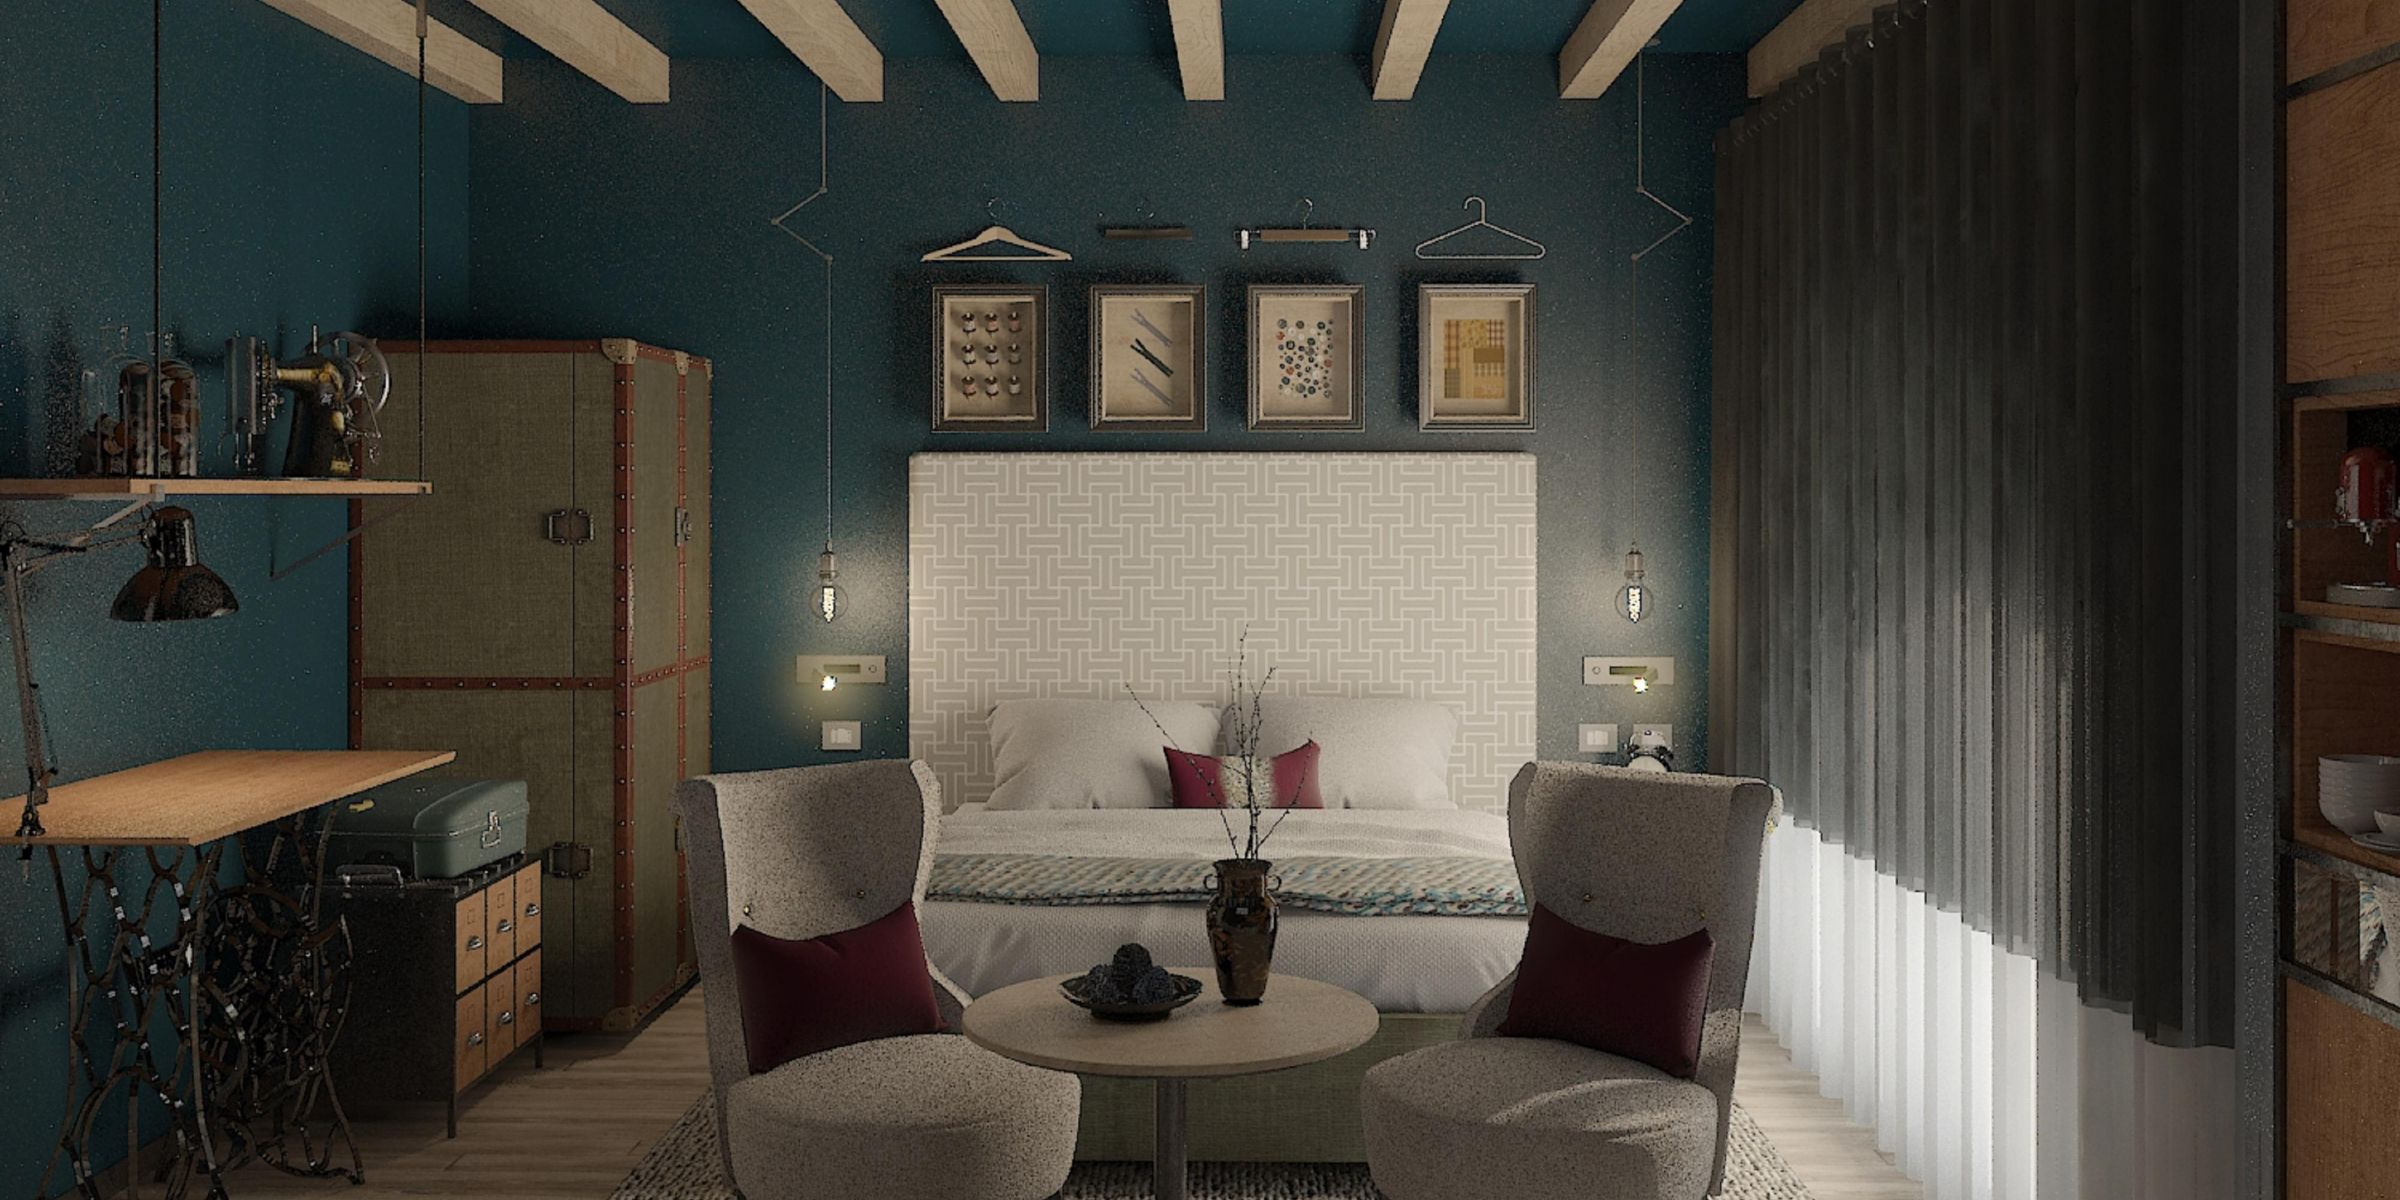 Light Bright Room With Street Views Of Milan City